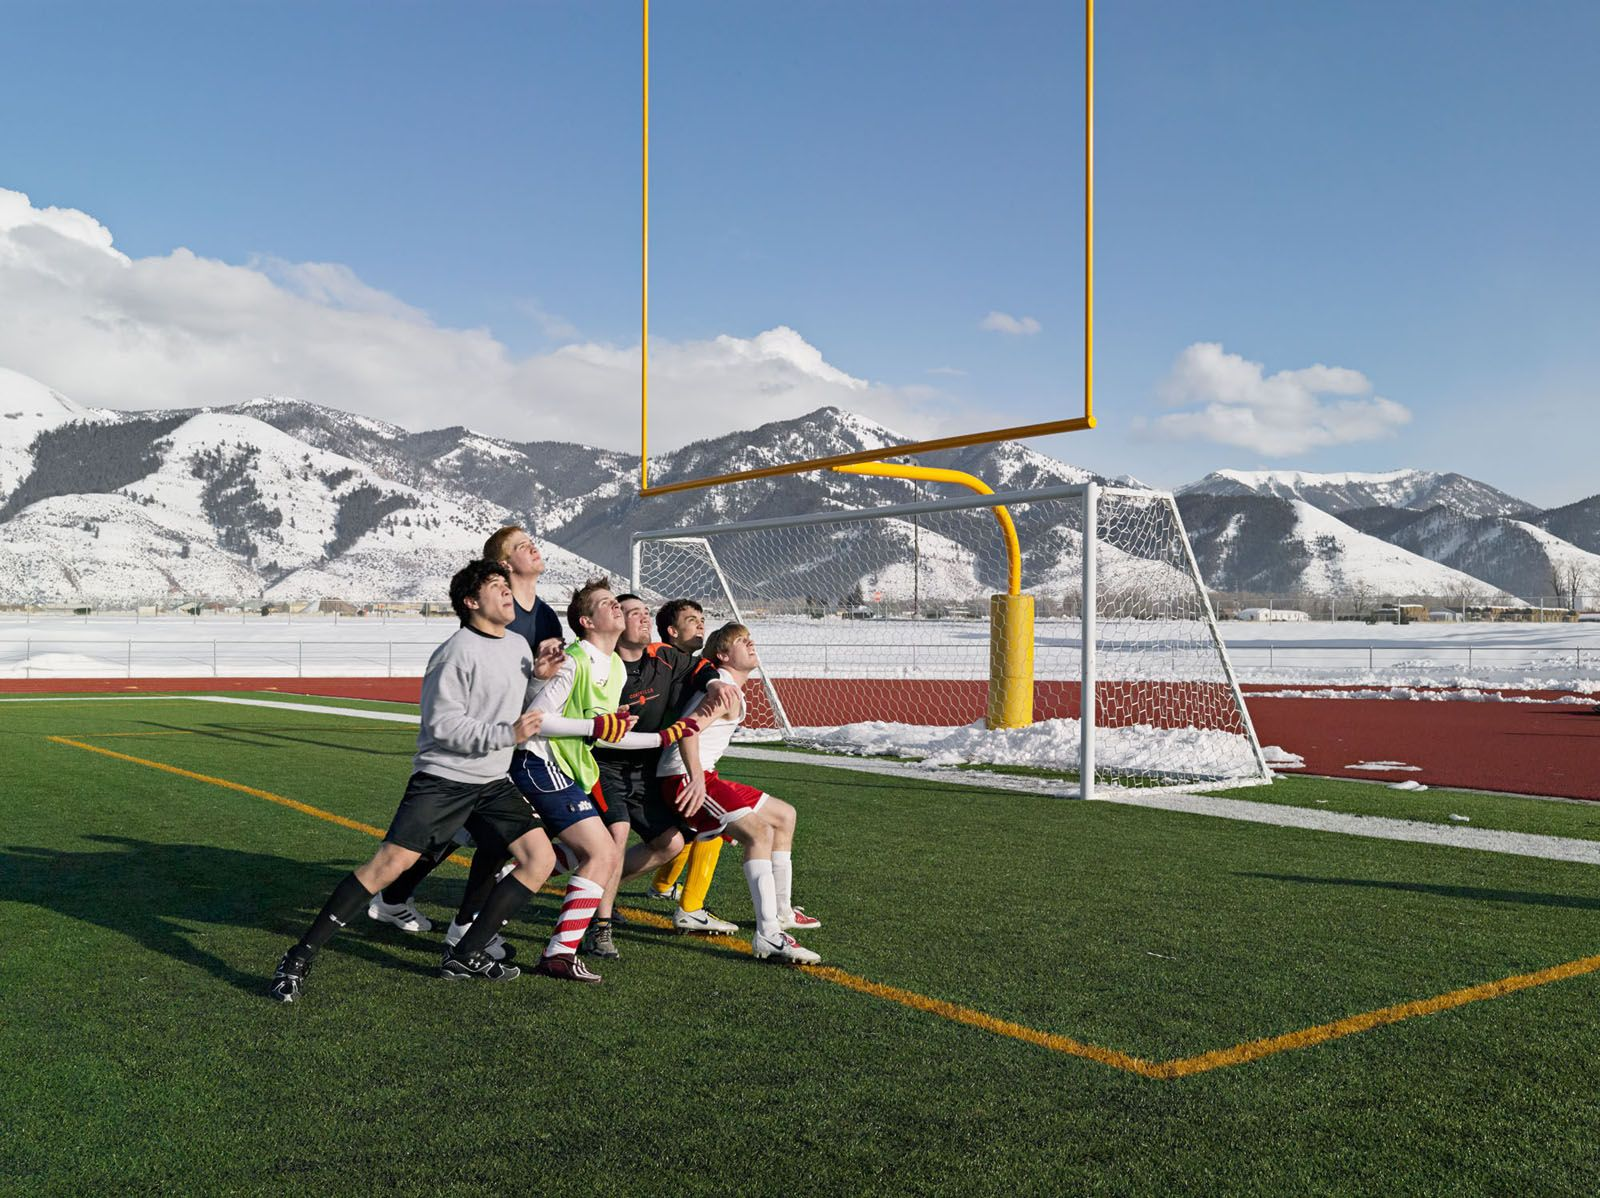 LUCAS FOGLIA, Soccer Practice, Star Valley Braves, Afton, Wyoming, 2010